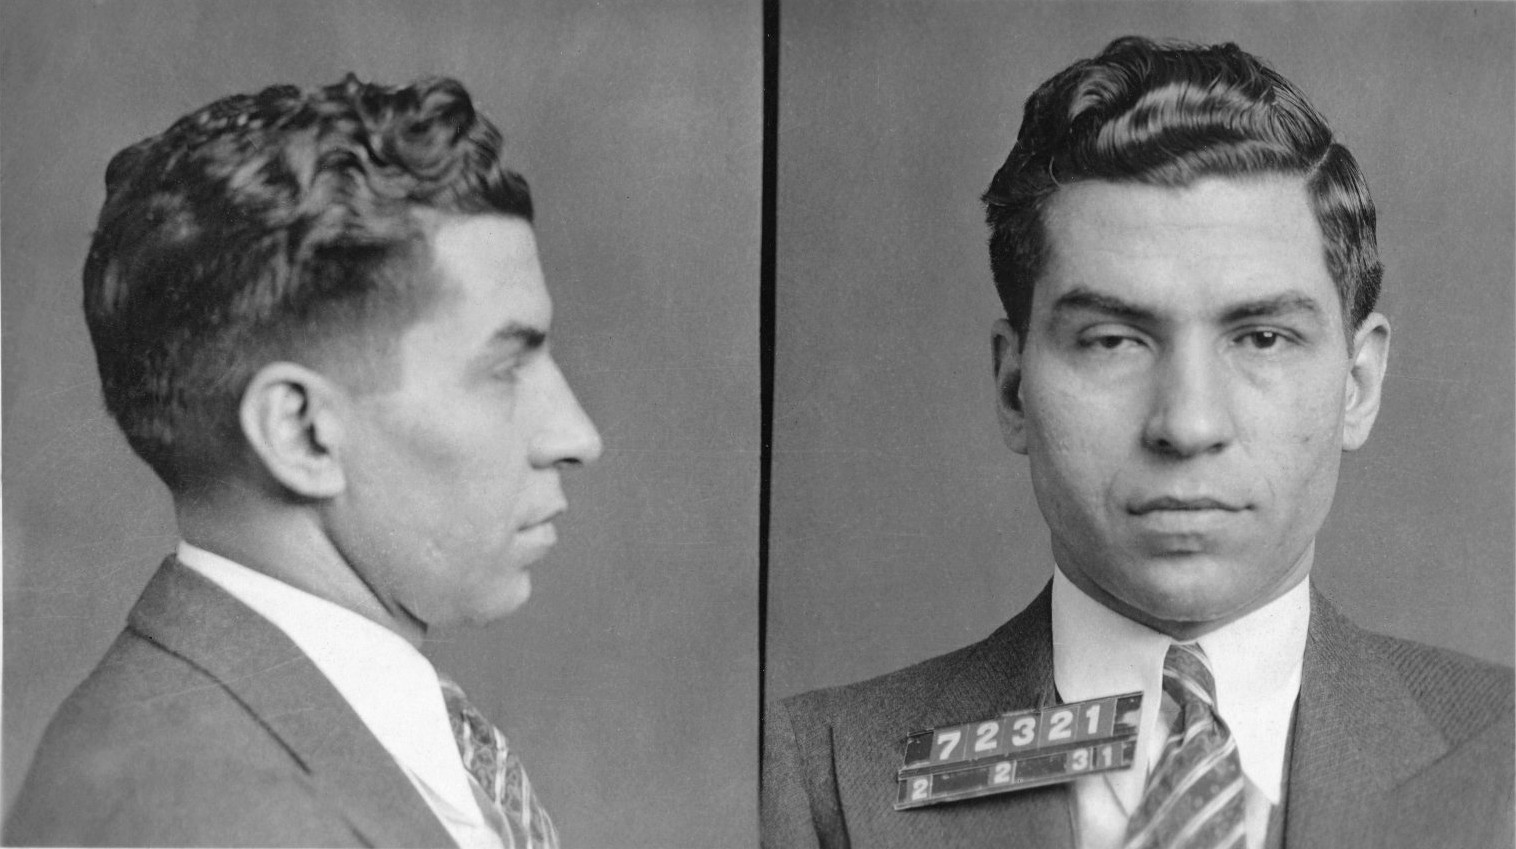 http://upload.wikimedia.org/wikipedia/commons/8/82/Lucky_Luciano_mugshot_1931.jpg